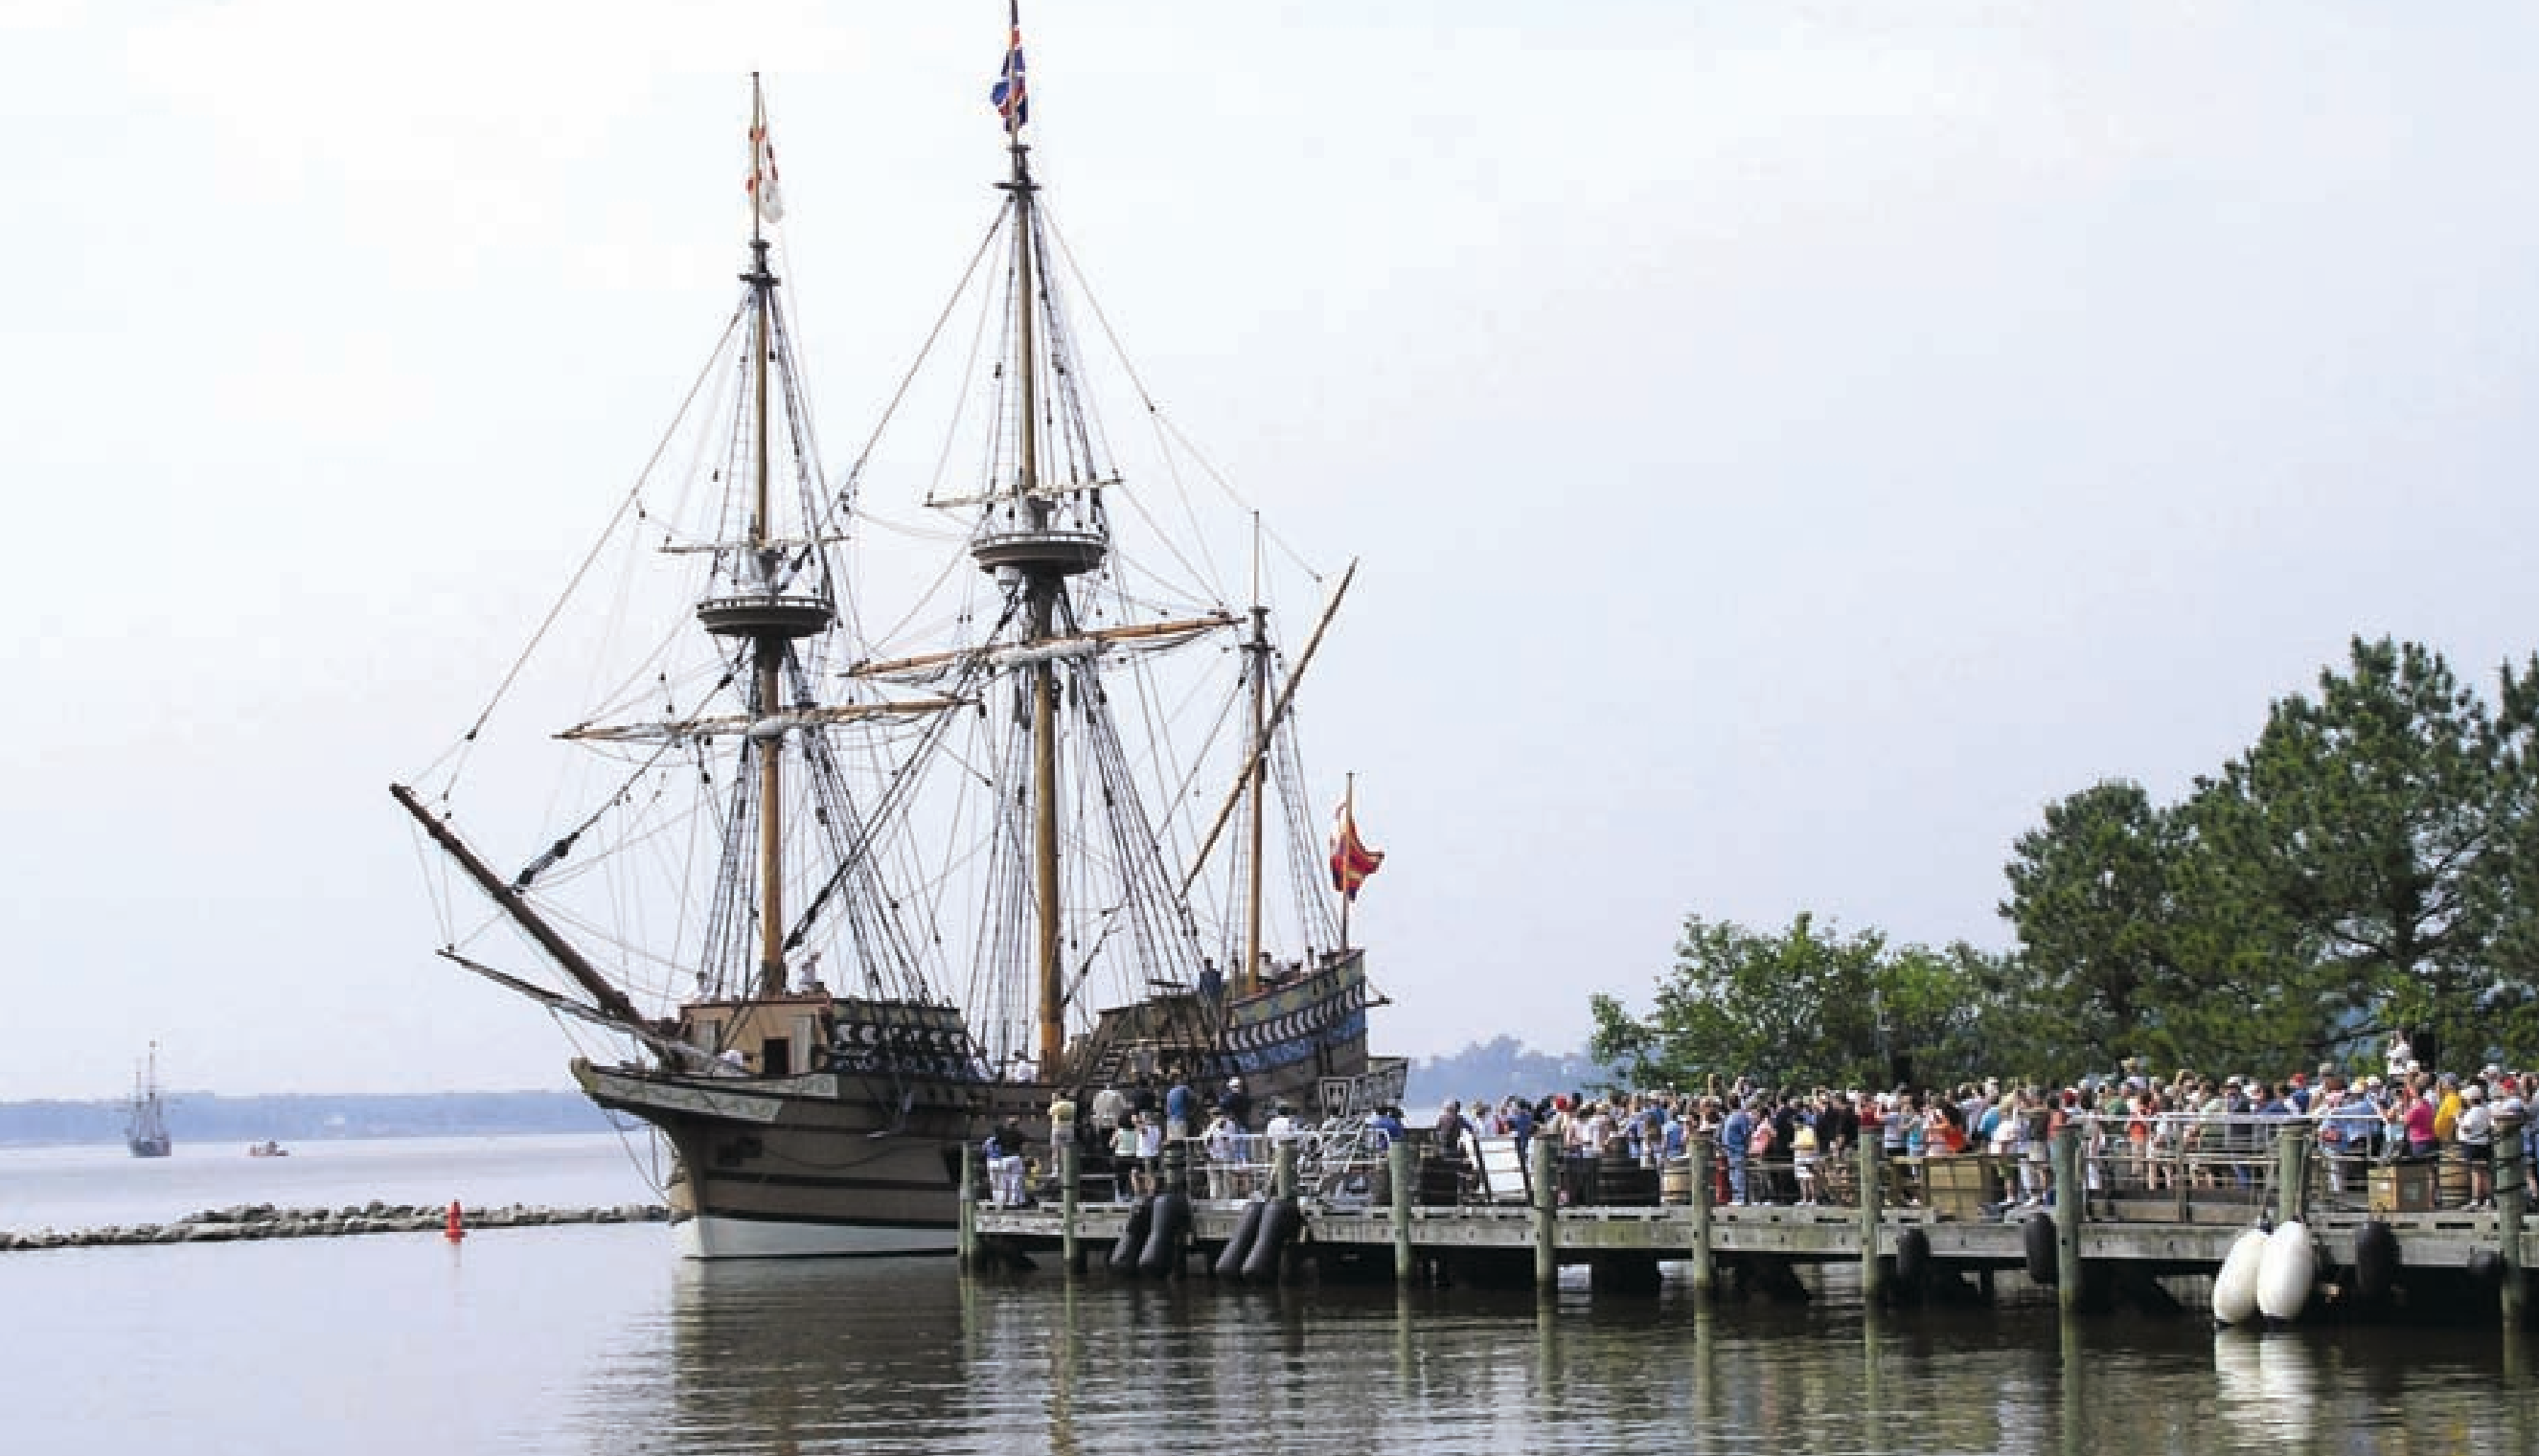 The replica Susan Constant docked at Jamestown Settlement pier on May 12, 2007, as part of the America's Anniversary Weekend celebrations.